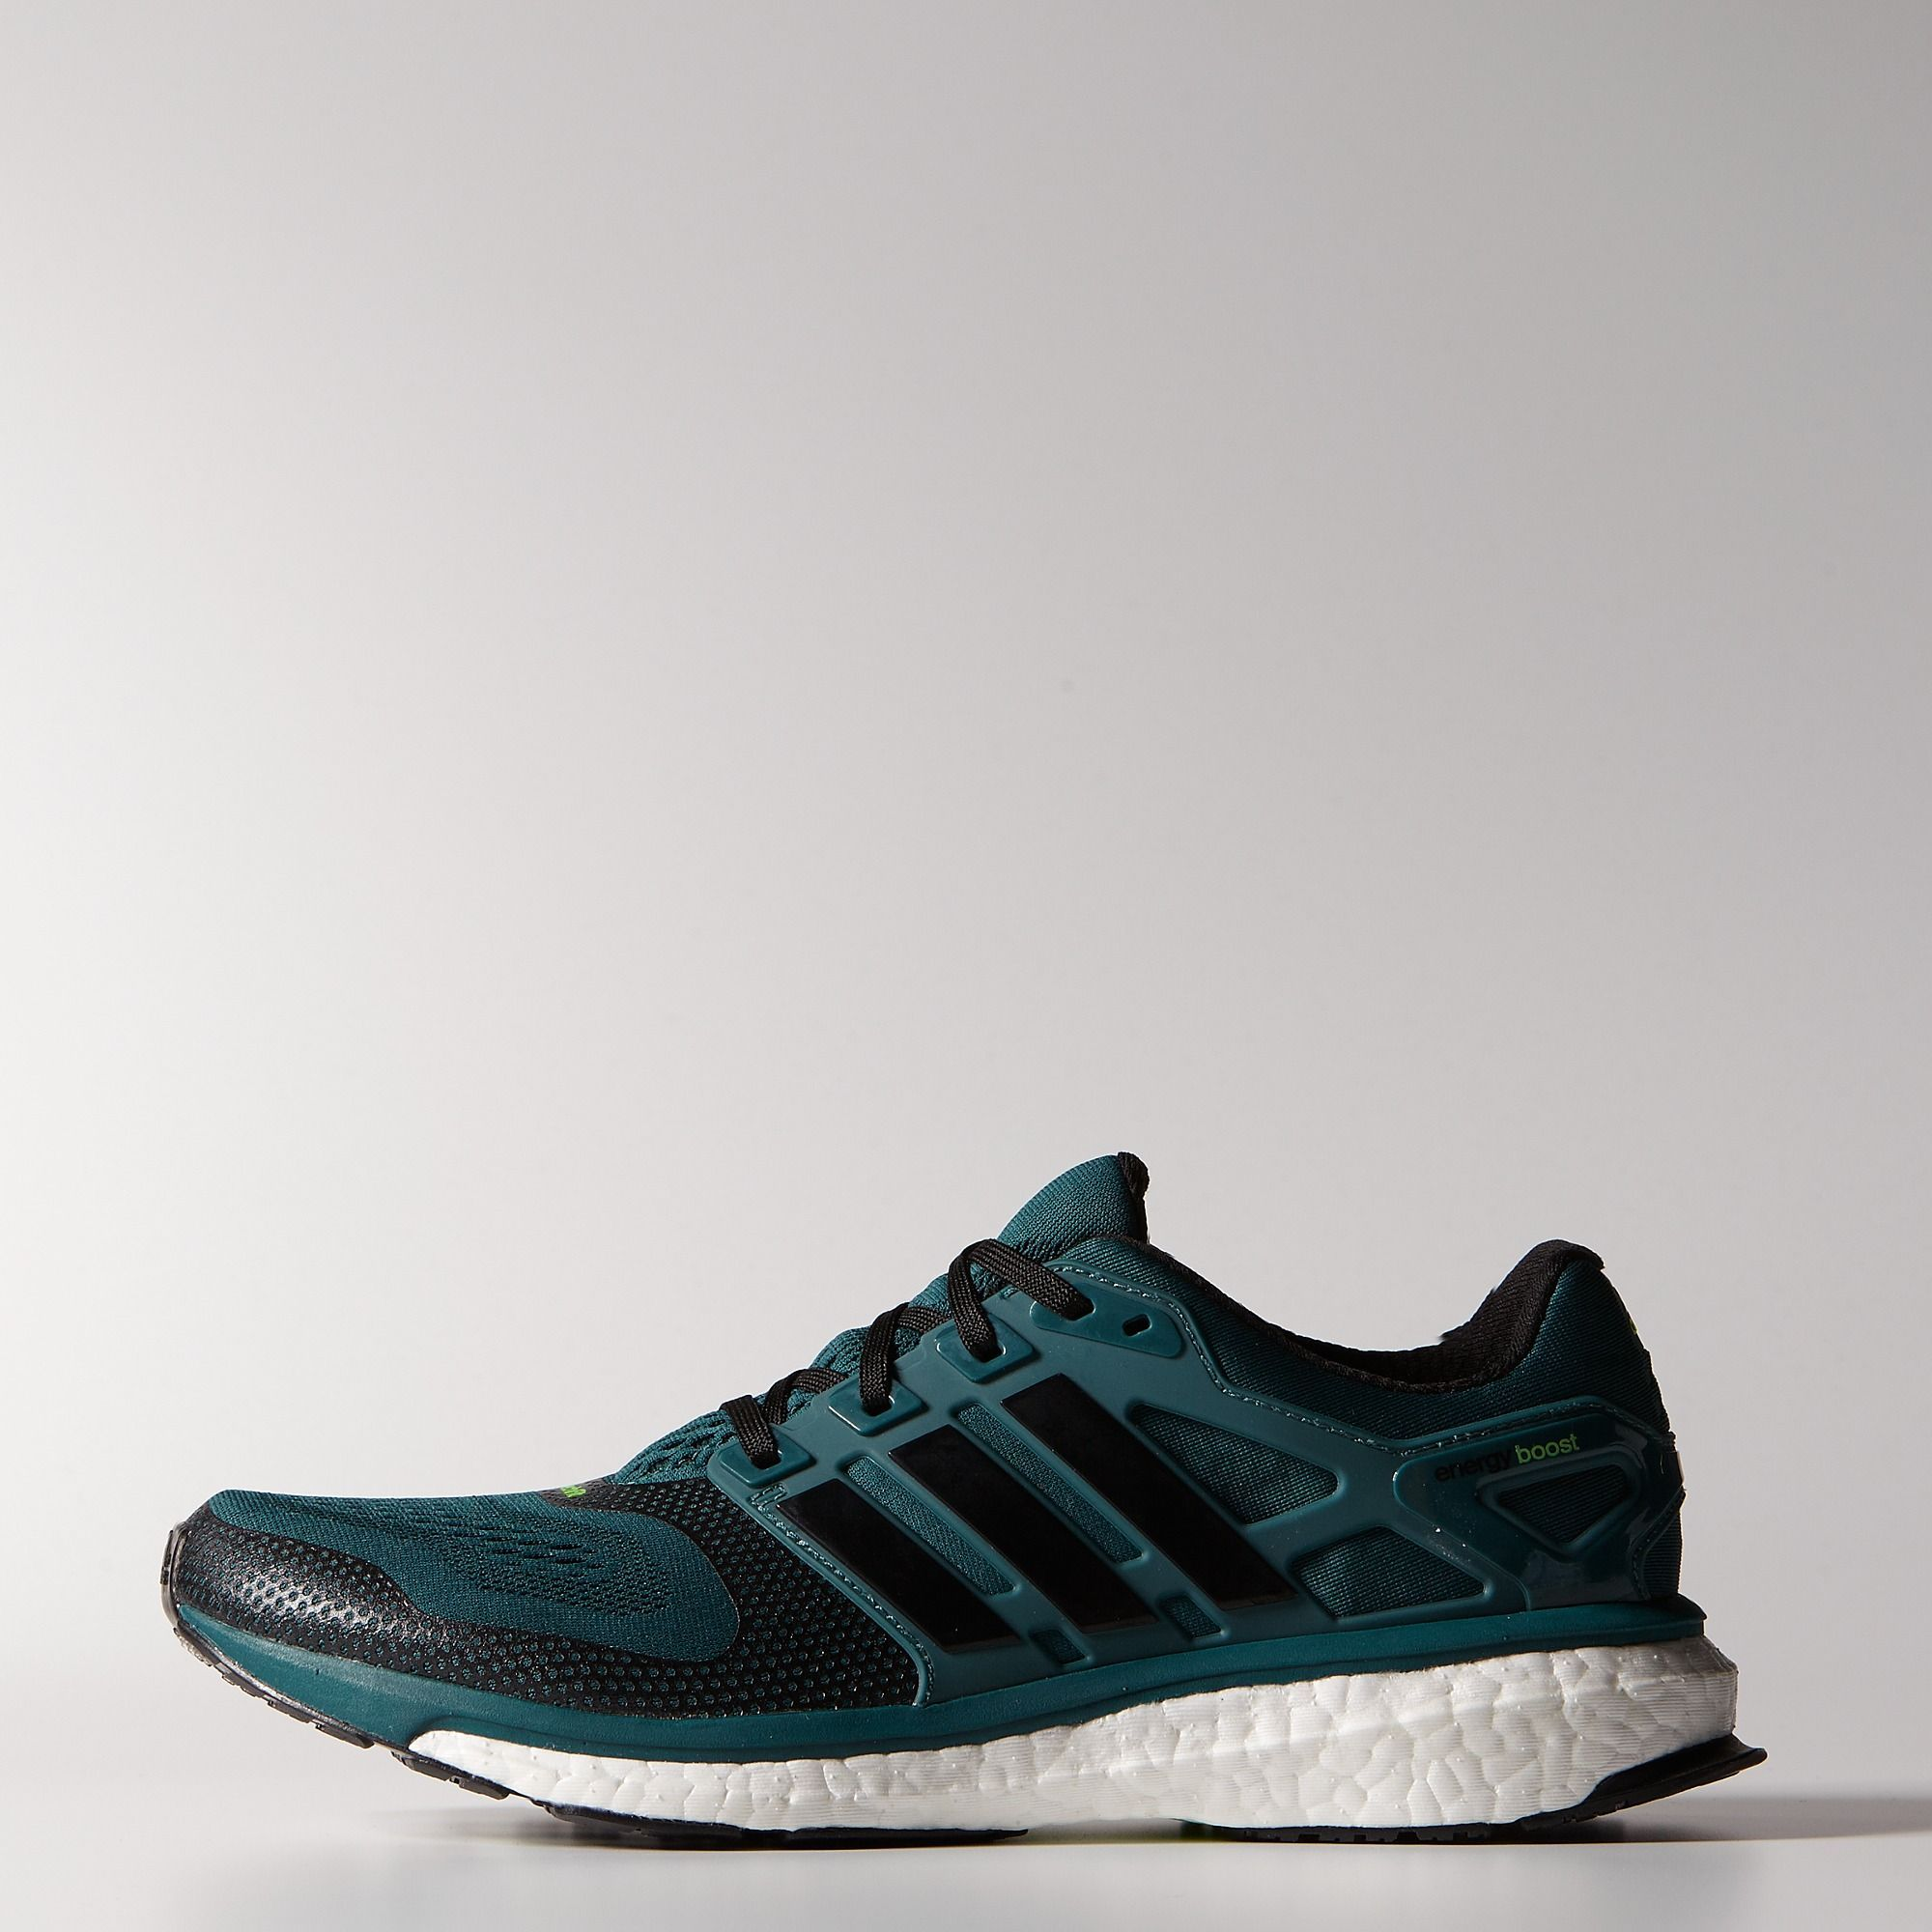 adidas Energy Boost 2.0 ESM Shoes Color Rich Green Black